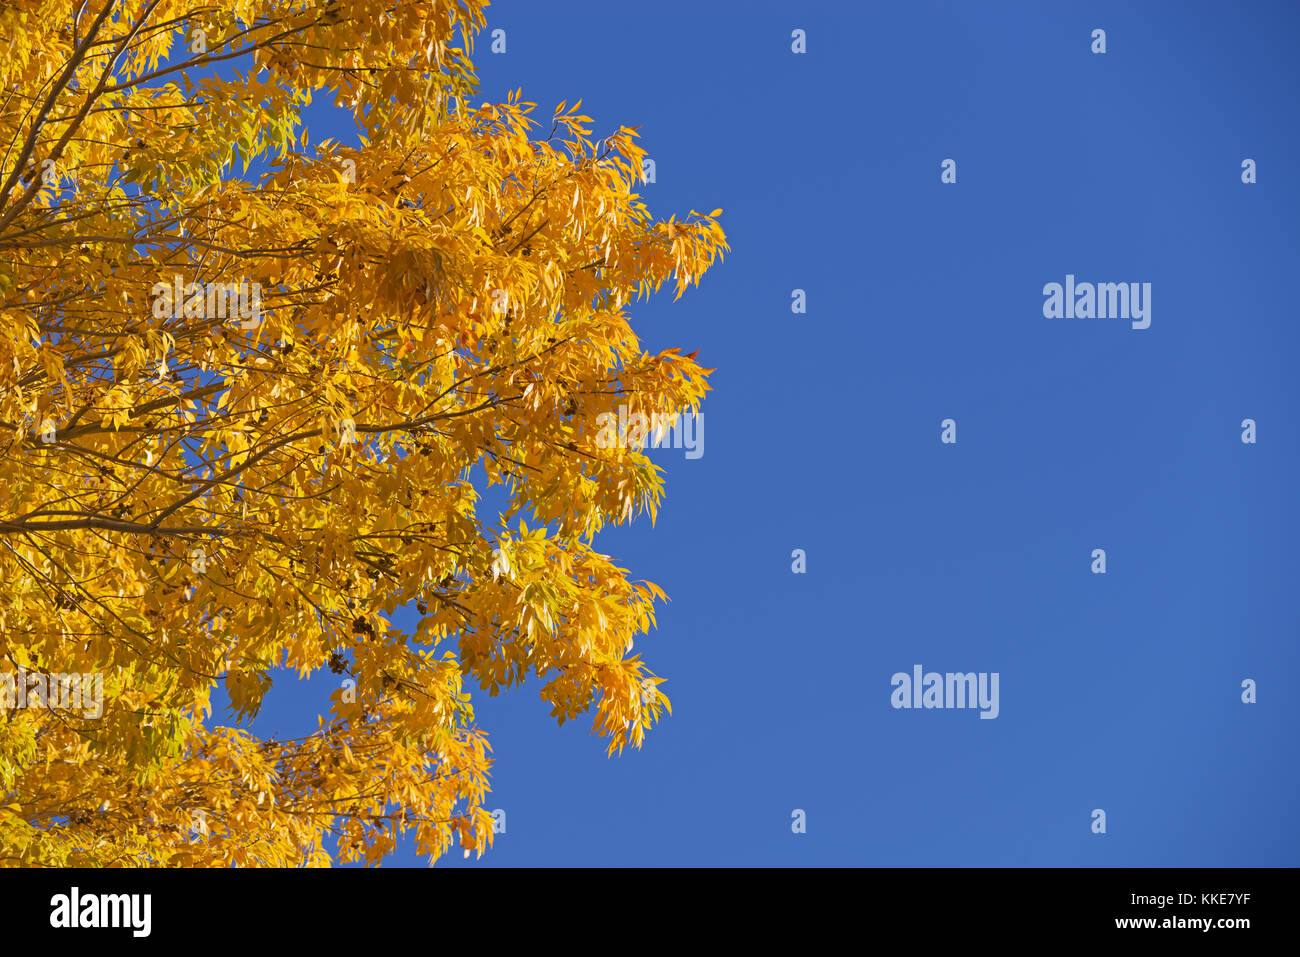 image of bright yellow autumn leaves against a blue sky - Stock Image